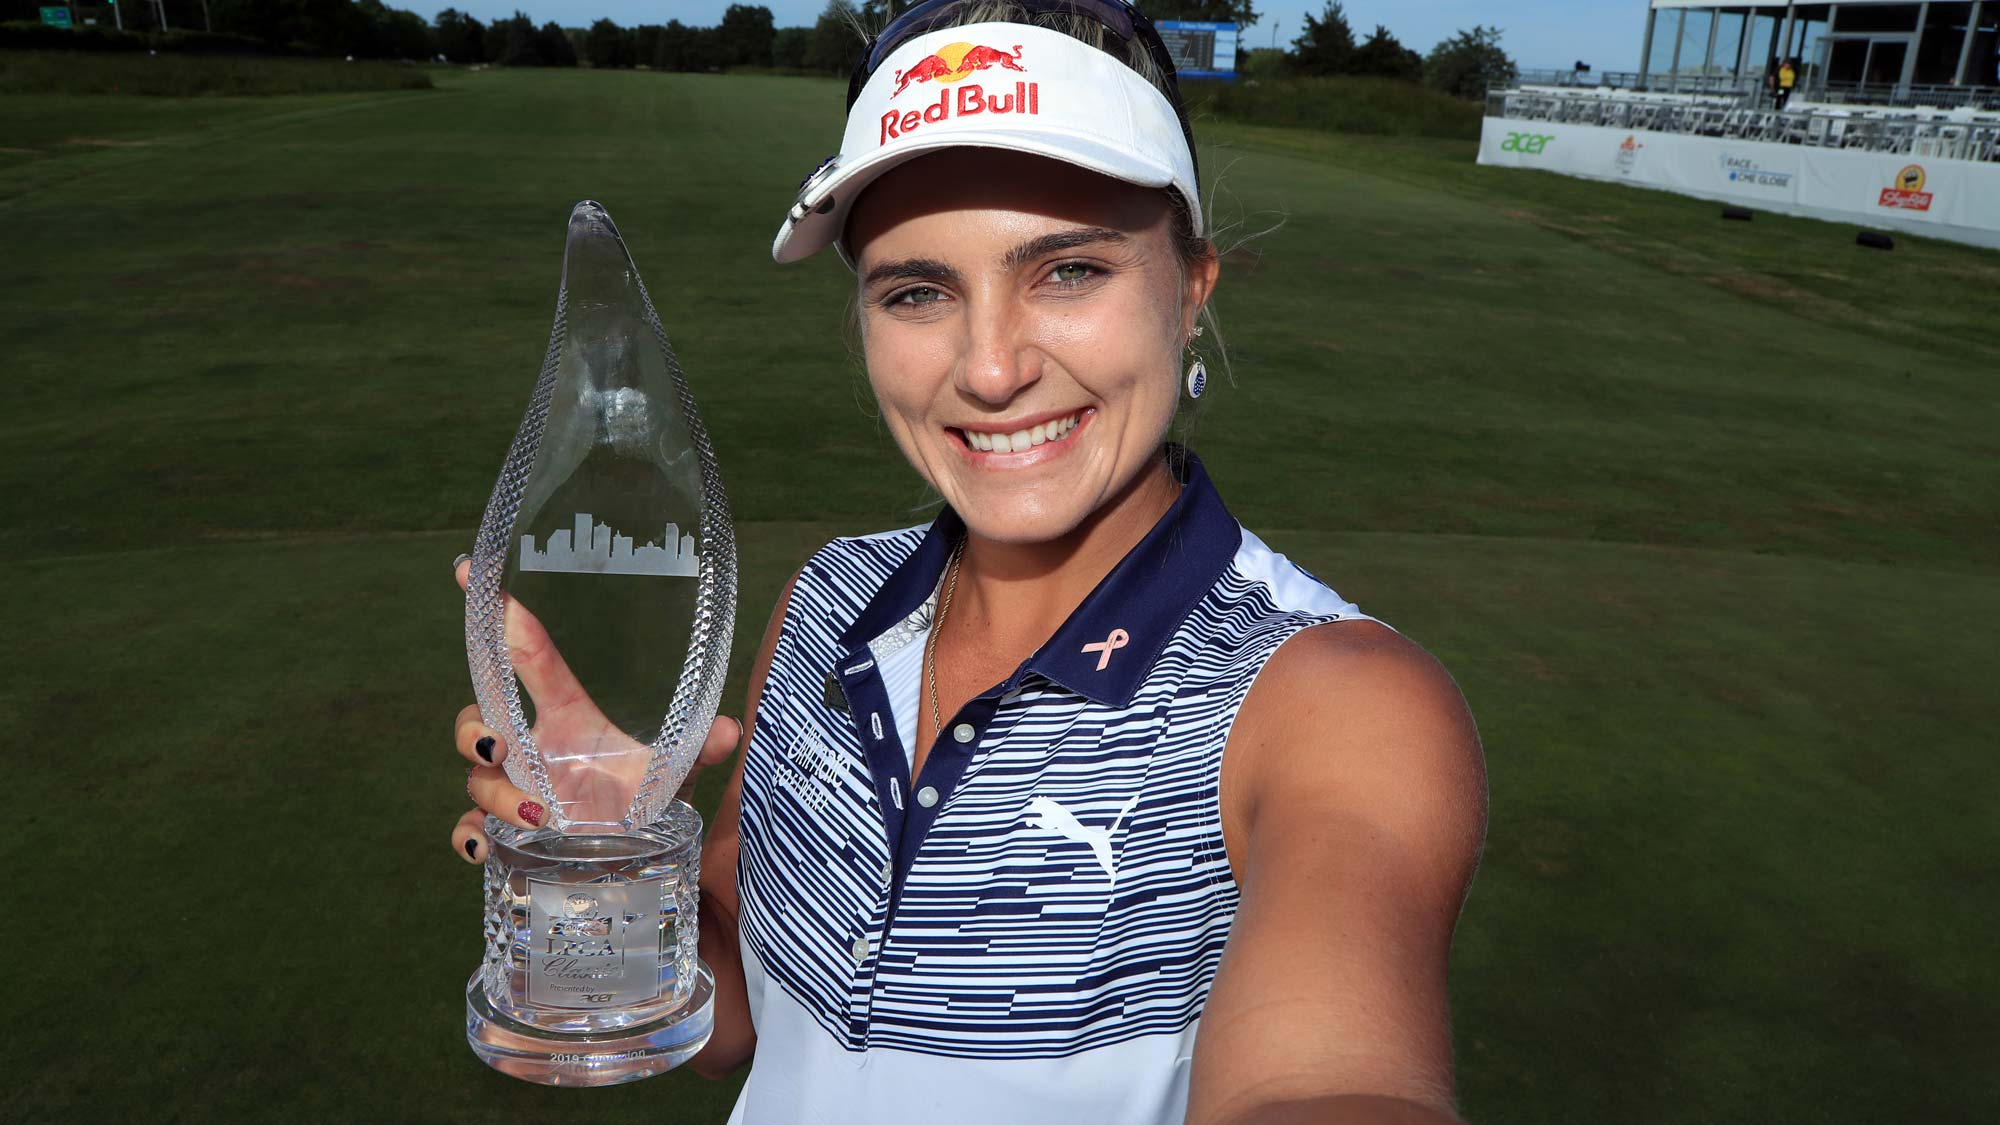 Lexi Thompson has her #BagsPacked for the 2020 Diamond Resorts Tournament of Champions after her victory at the 2019 ShopRite LPGA Classic presented by Acer